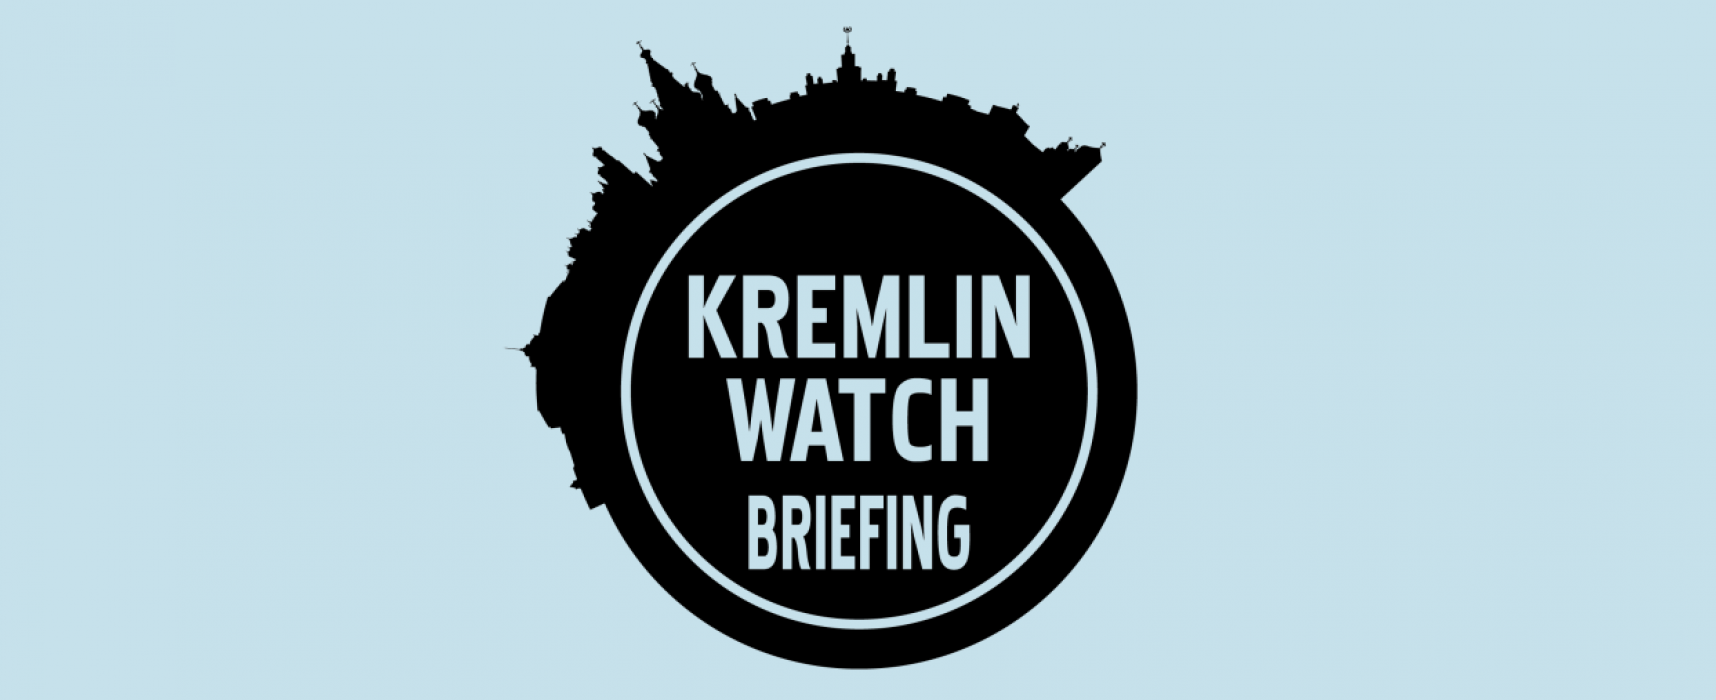 Kremlin Watch Briefing: SpaceX launch ruffles some feathers